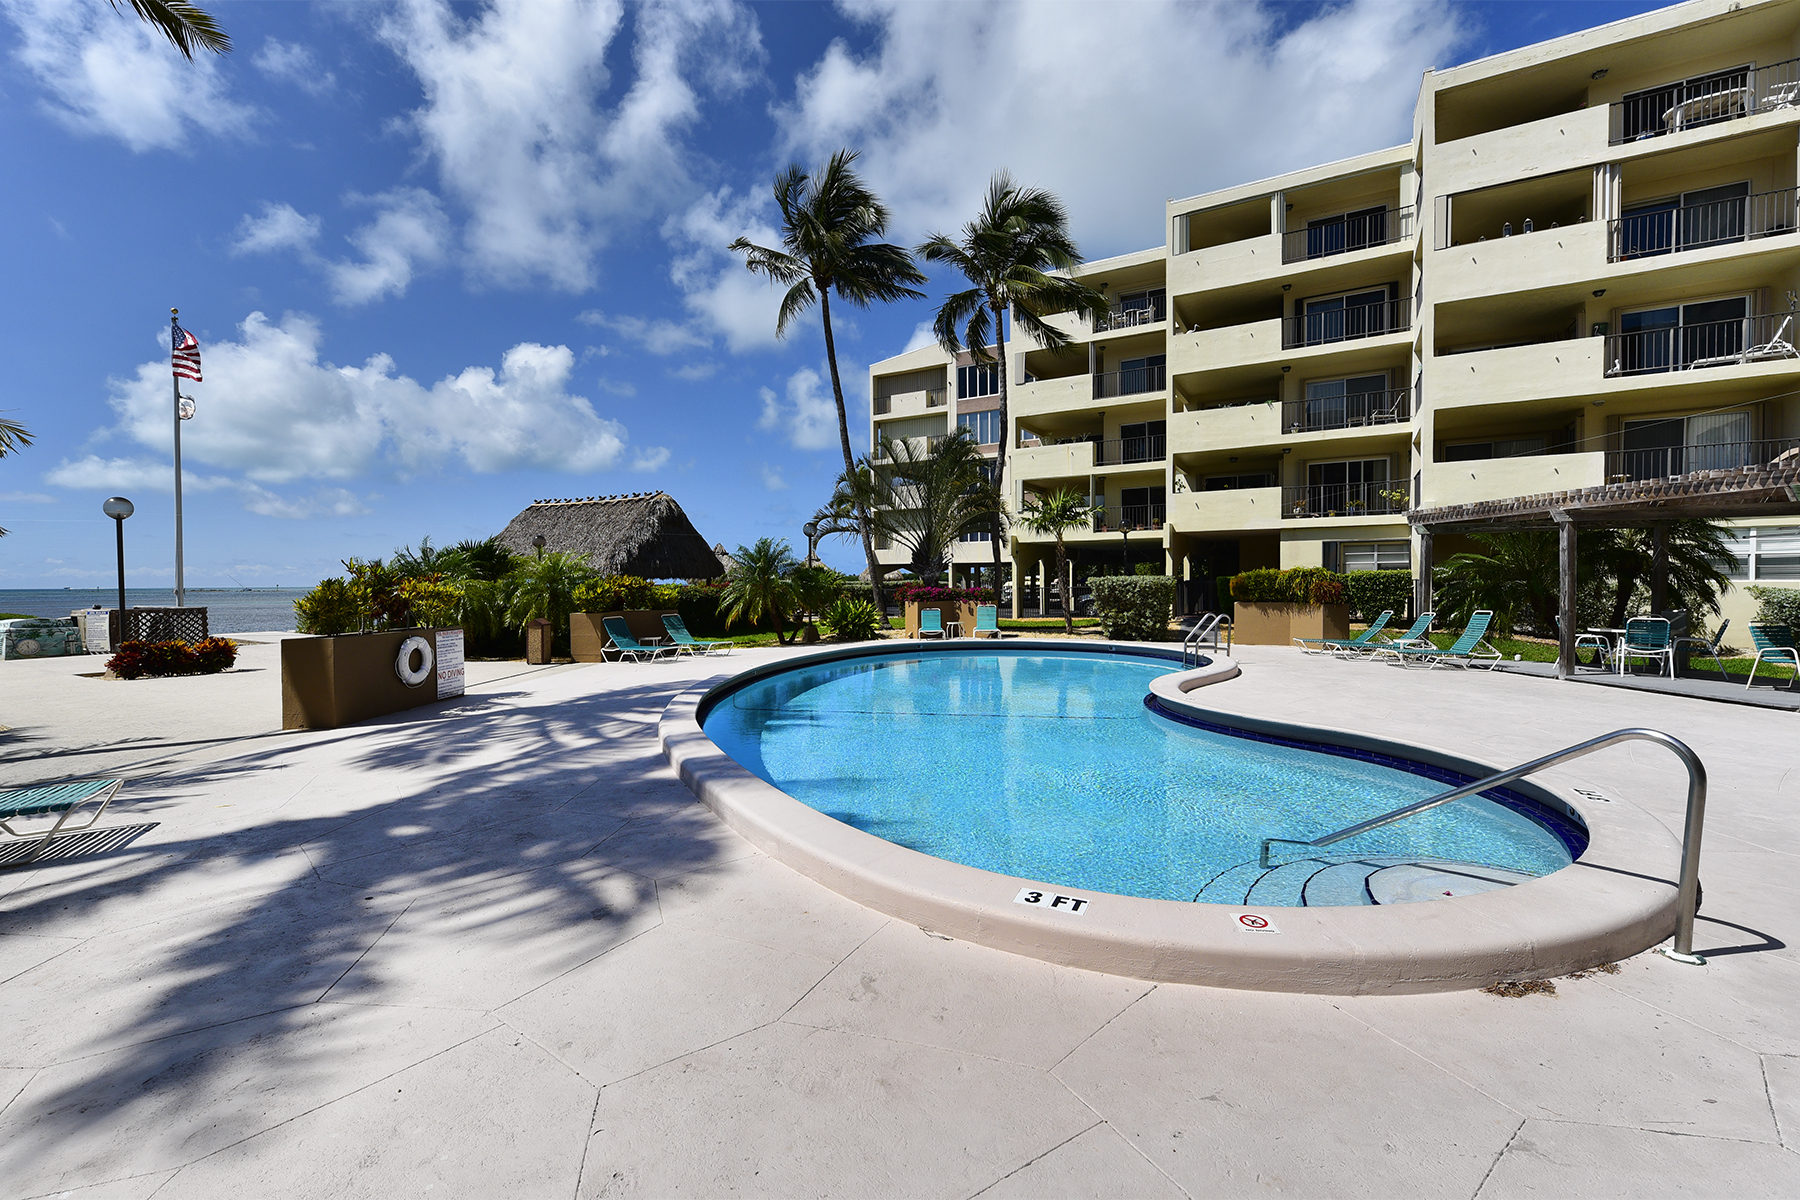 Condominium for Sale at The Palms Of Islamorada 79901 Overseas Highway #103 Islamorada, Florida 33036 United States